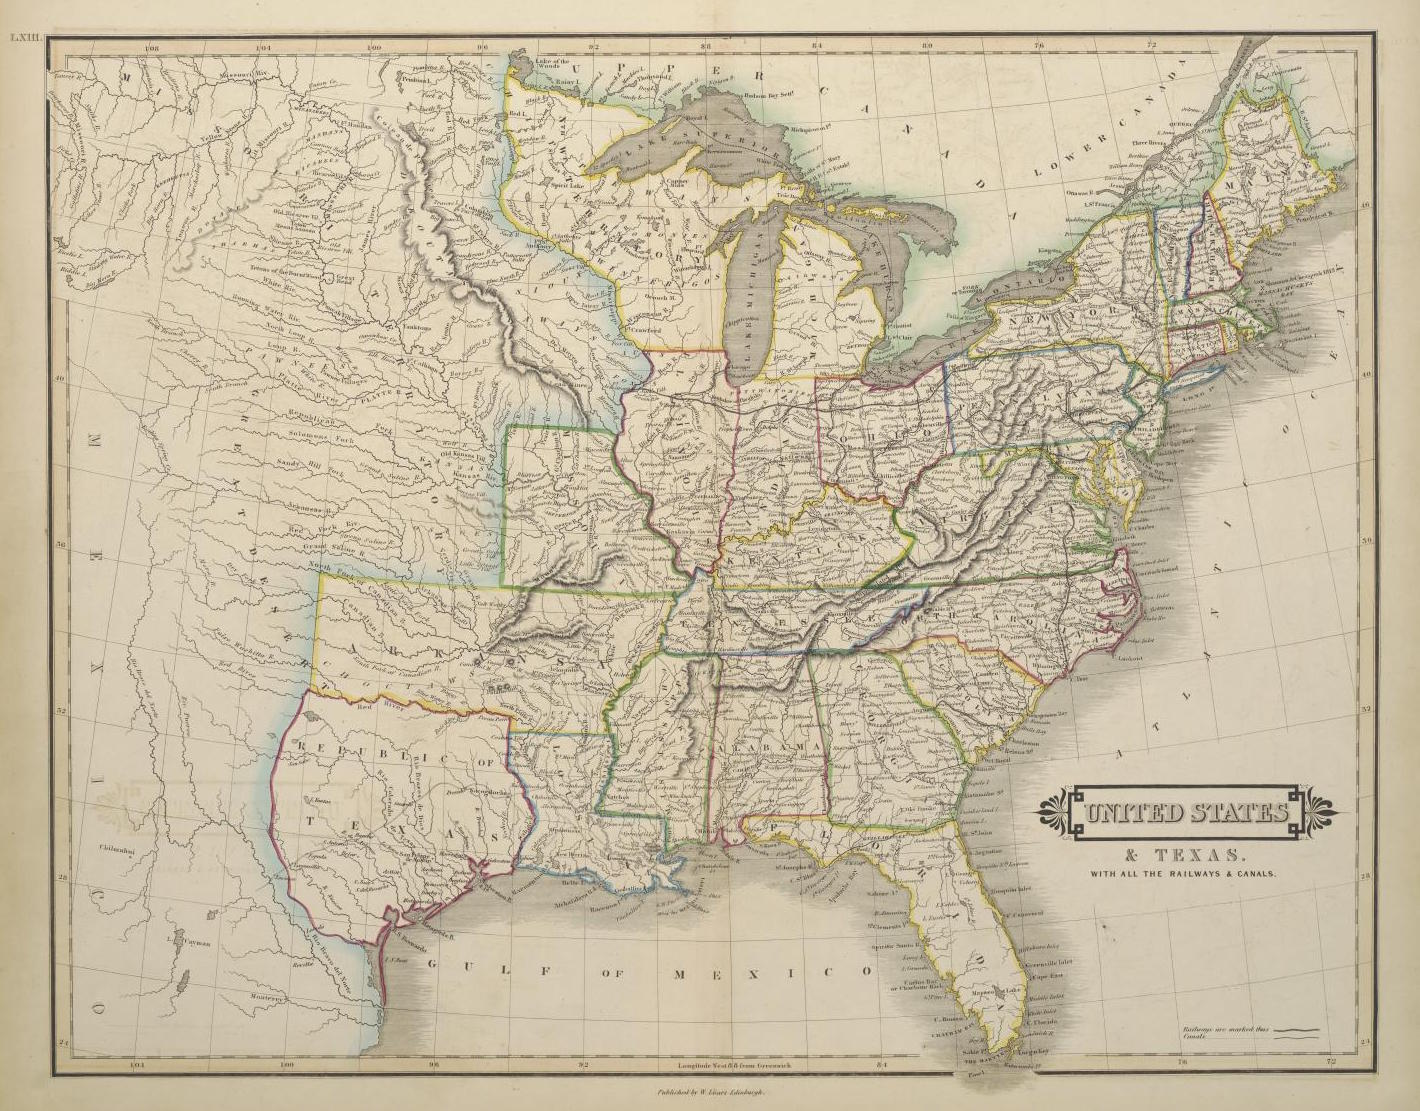 A Map Of The United States And Republic Of Texas Including